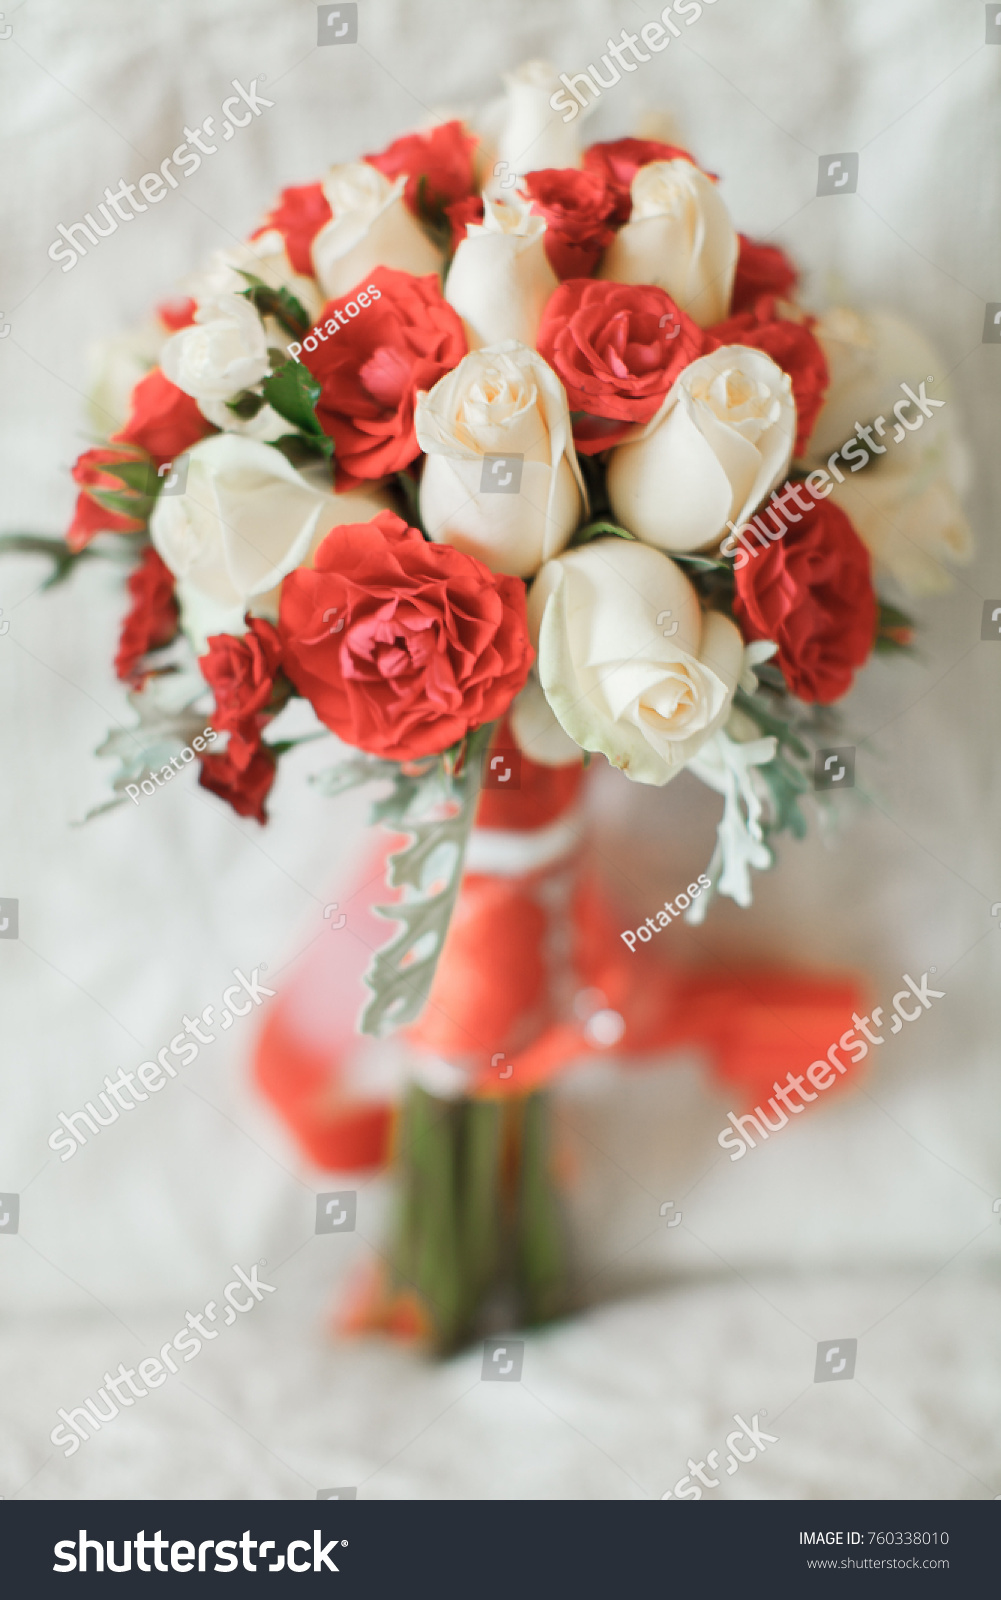 Wedding Bouquet Of Red And White Rose And Ribbon With Wedding Rings